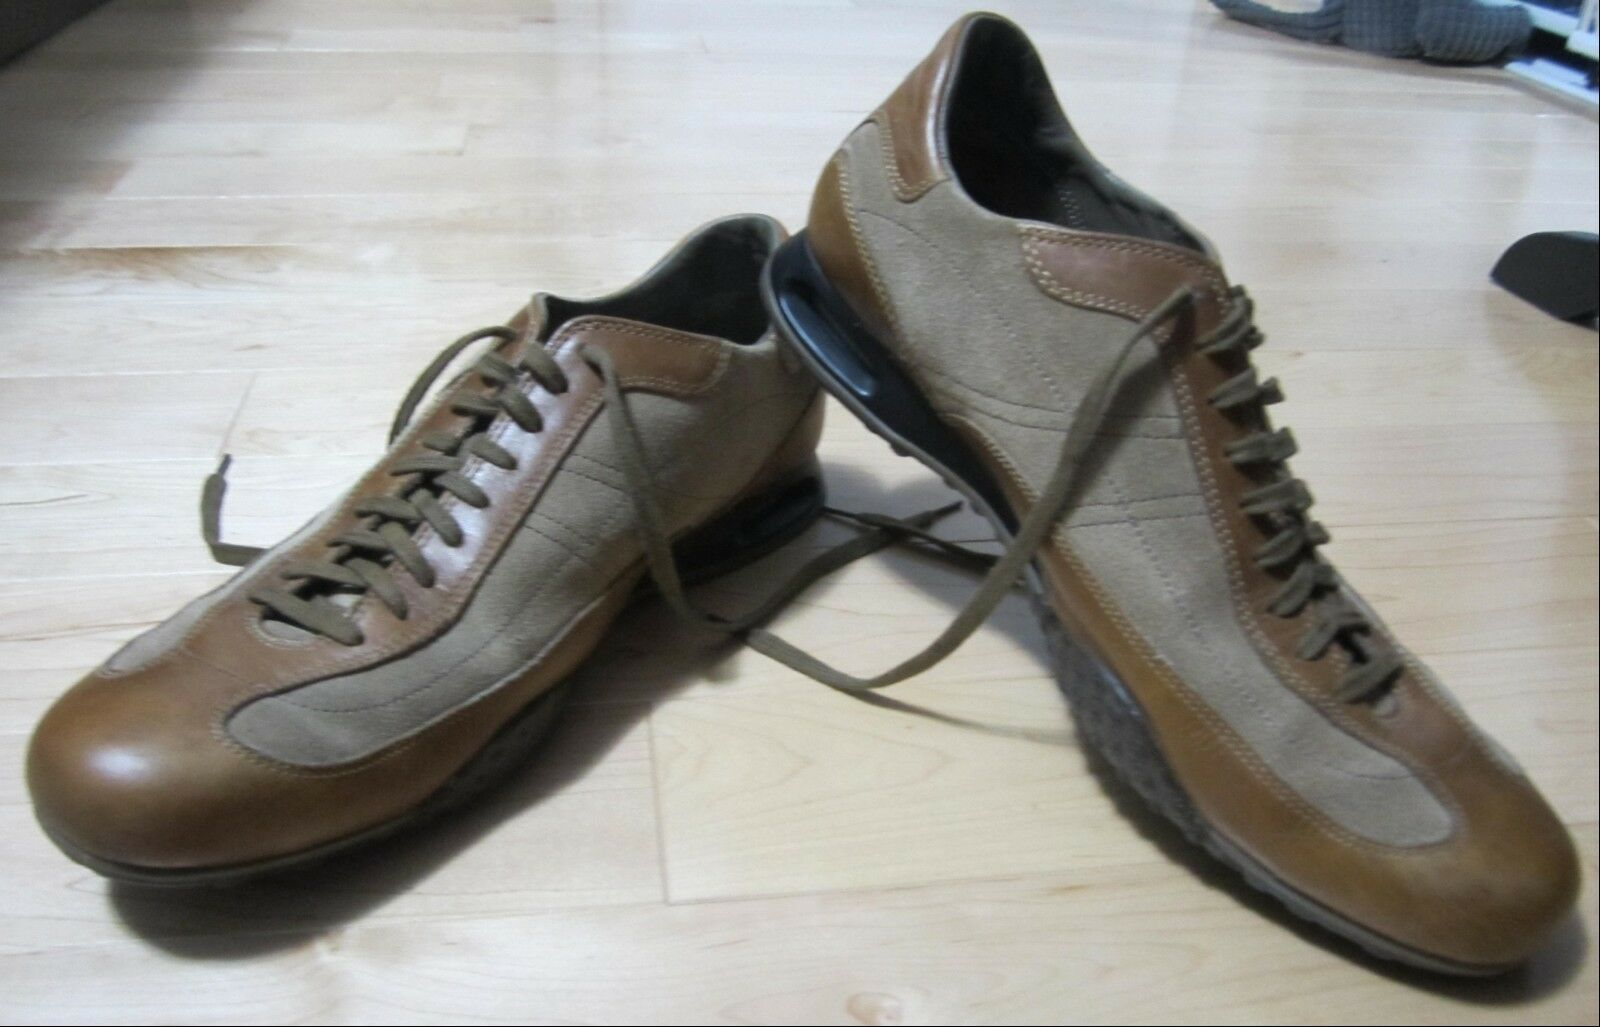 Cole Haan Men's Taupe Suede - Tan Leather Lace Up Oxford shoes Size 9.5